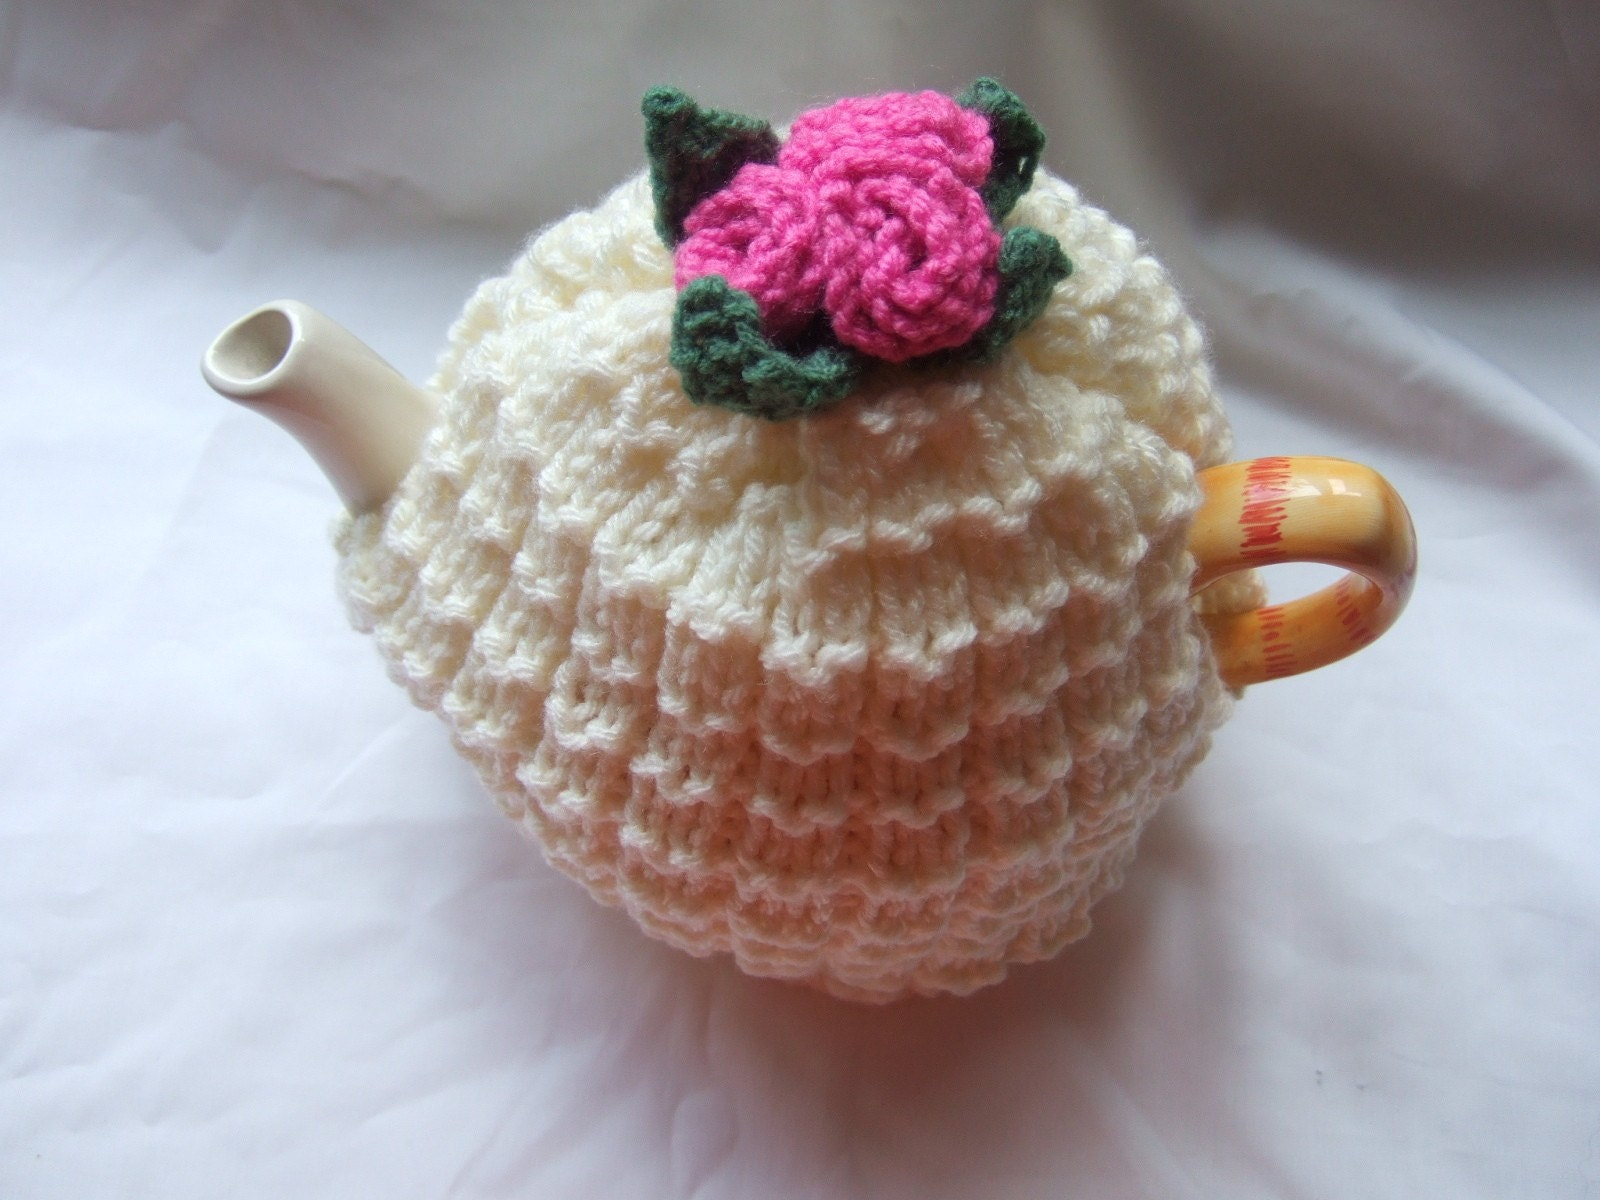 Free Knitted Tea Cosies Patterns : Items similar to rose tea cosy knitting pattern on Etsy